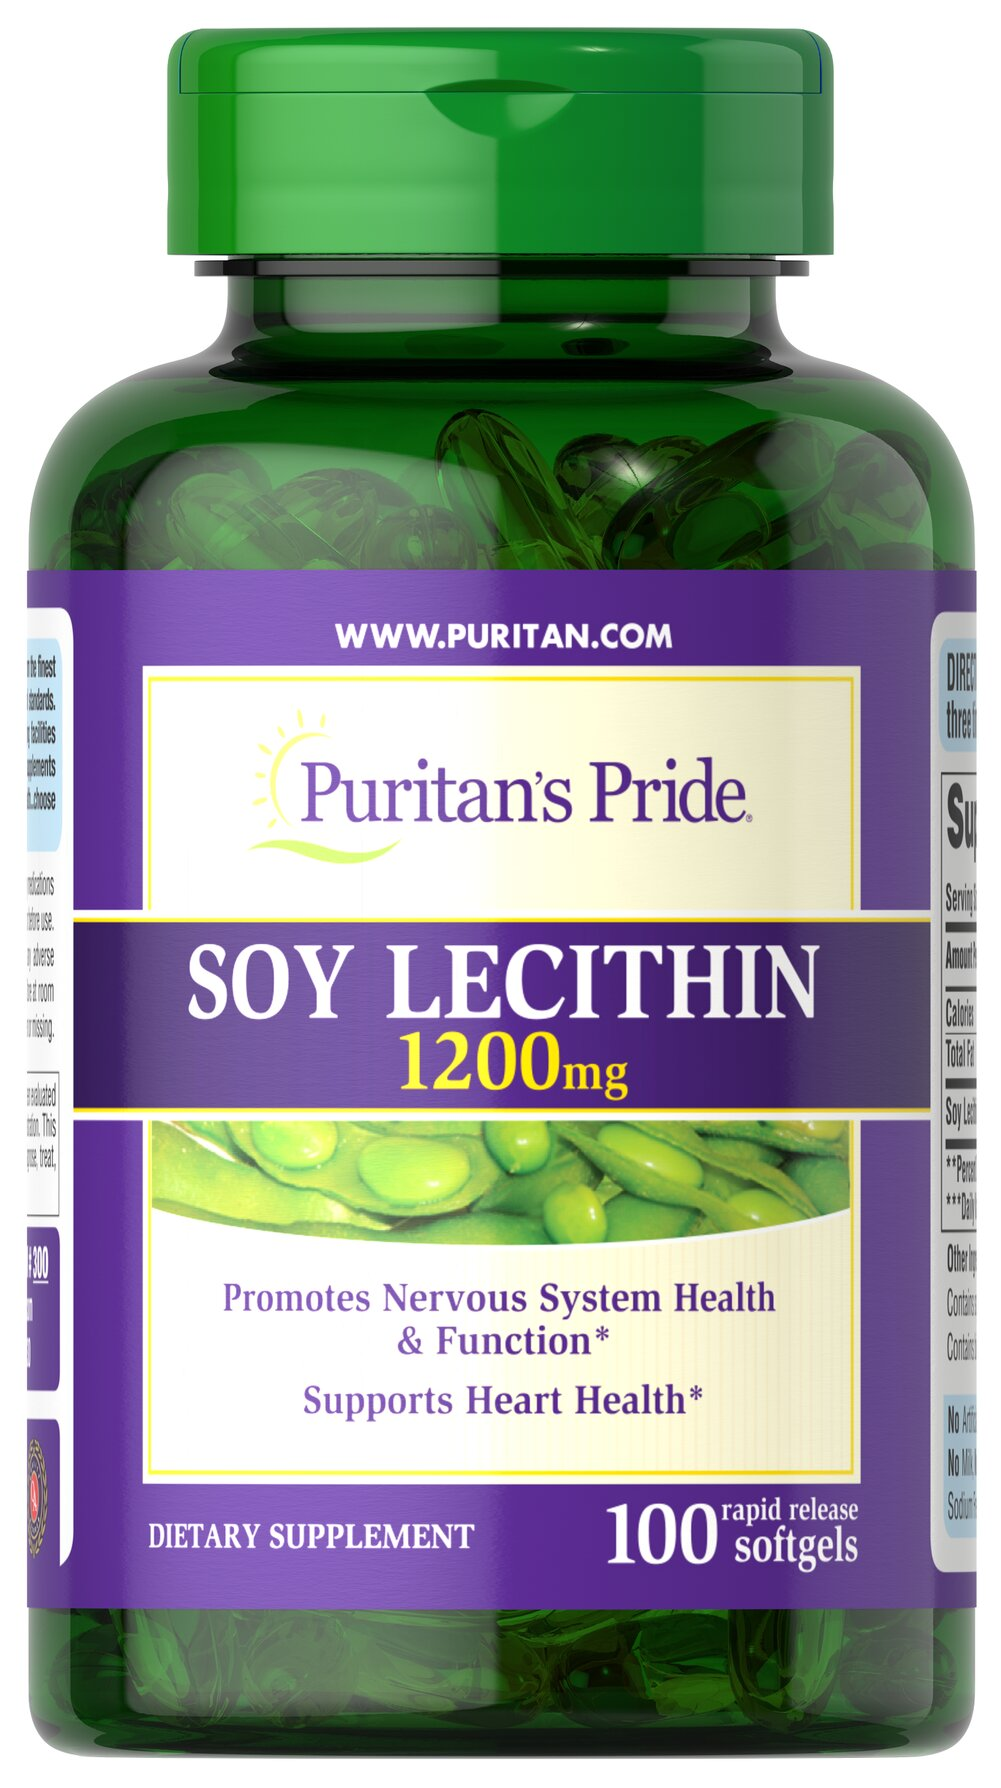 Soy Lecithin 1200 mg <p>Lecithin is an important natural source of Choline and Inositol, two nutrients important for the proper functioning of the body.** Since levels of phospholipids in the brain can decline as you get older, it may be especially important to supplement with a high-quality Lecithin formula from Puritan's Pride.</p> 100 Softgels 1200 mg $11.04